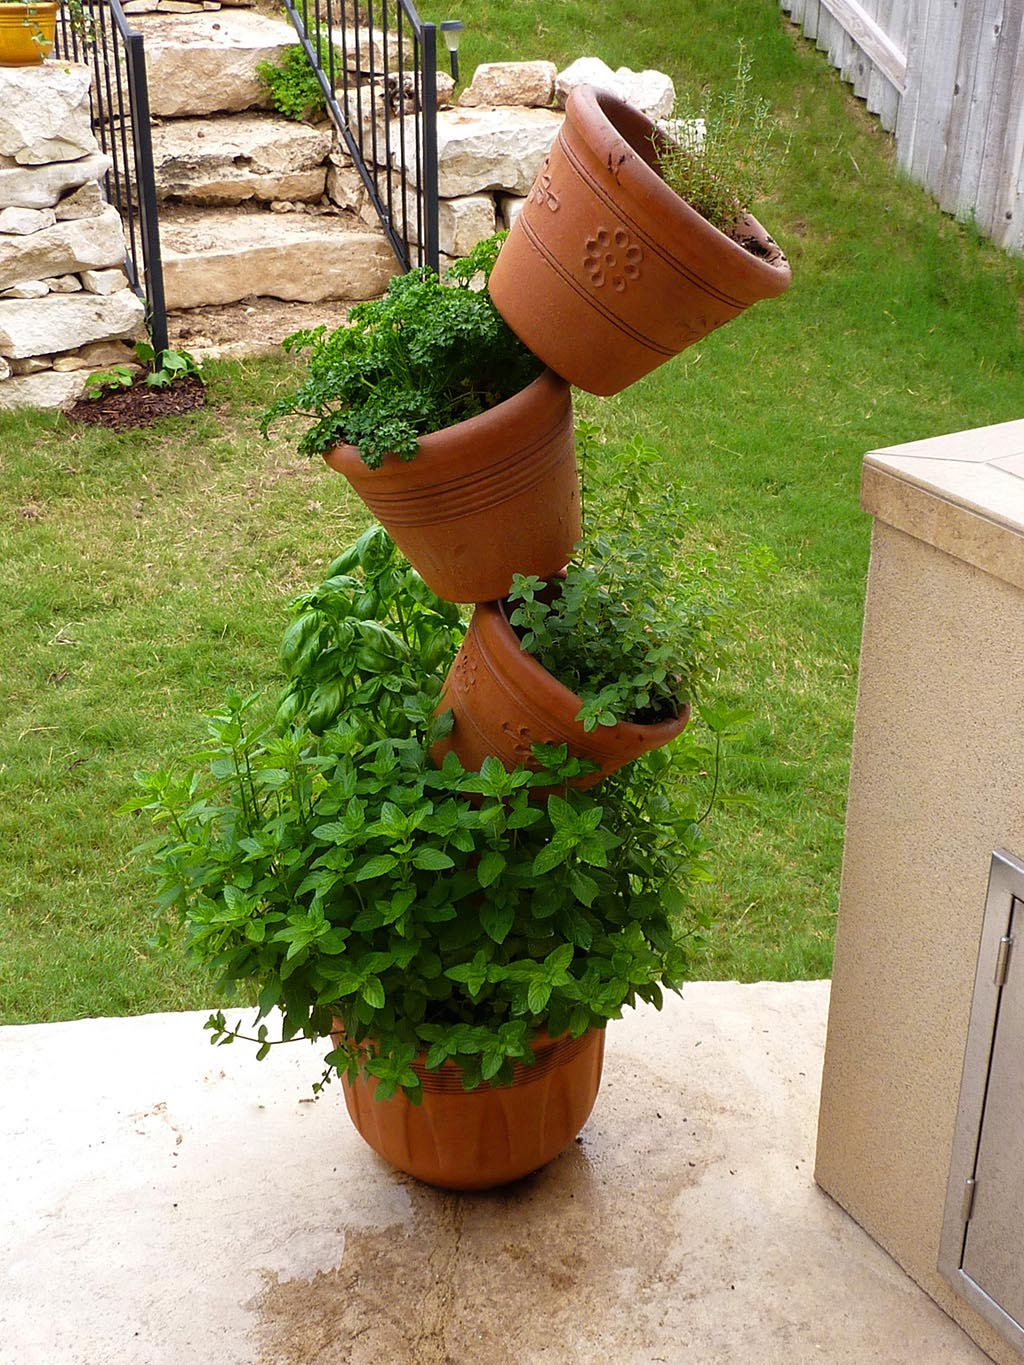 Planting herbs outdoor garden garden design ideas for Plants for outdoor garden